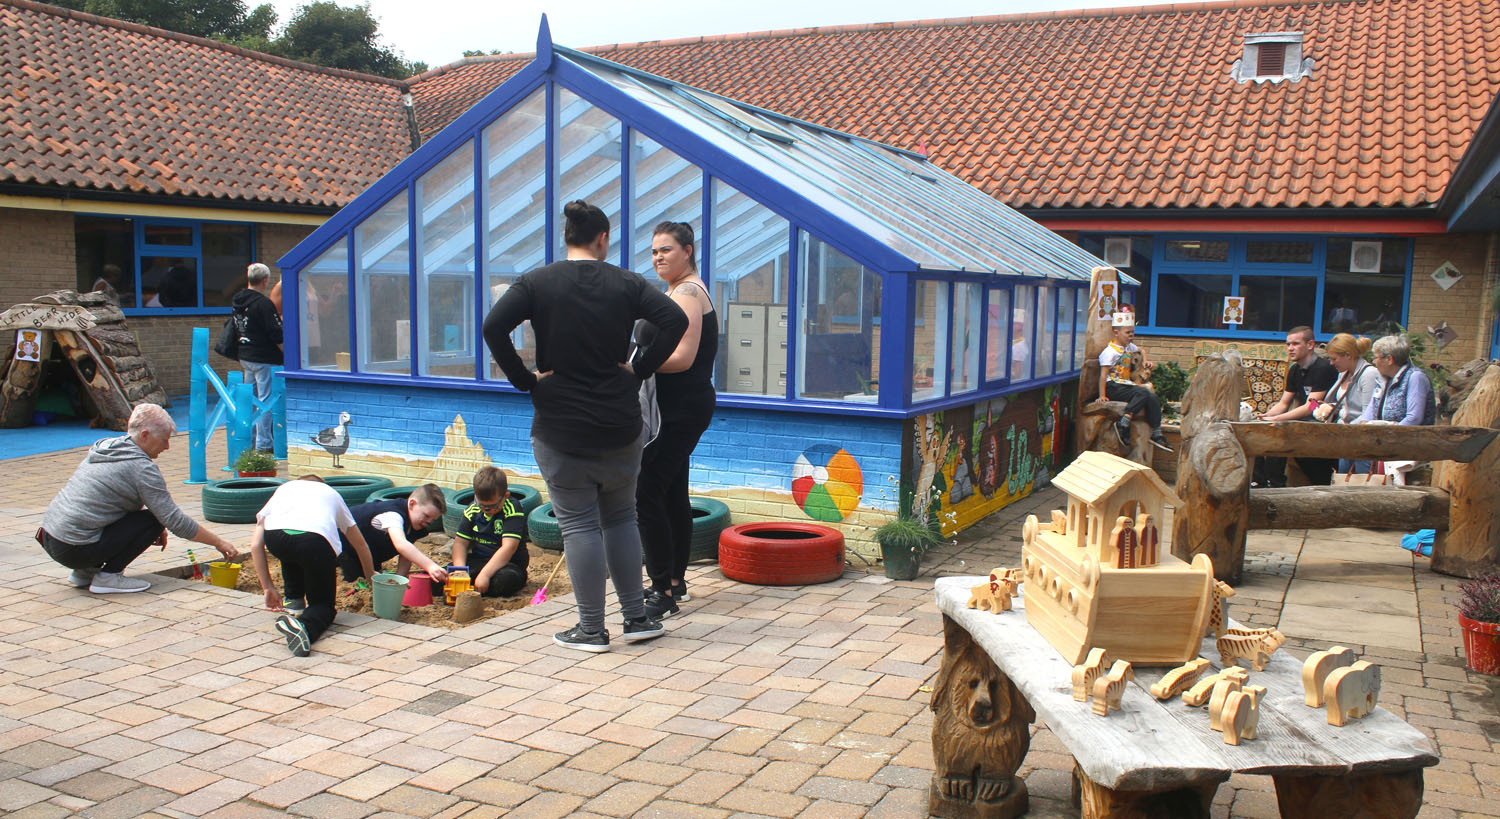 New Outdoor Learning Space at Walworth School